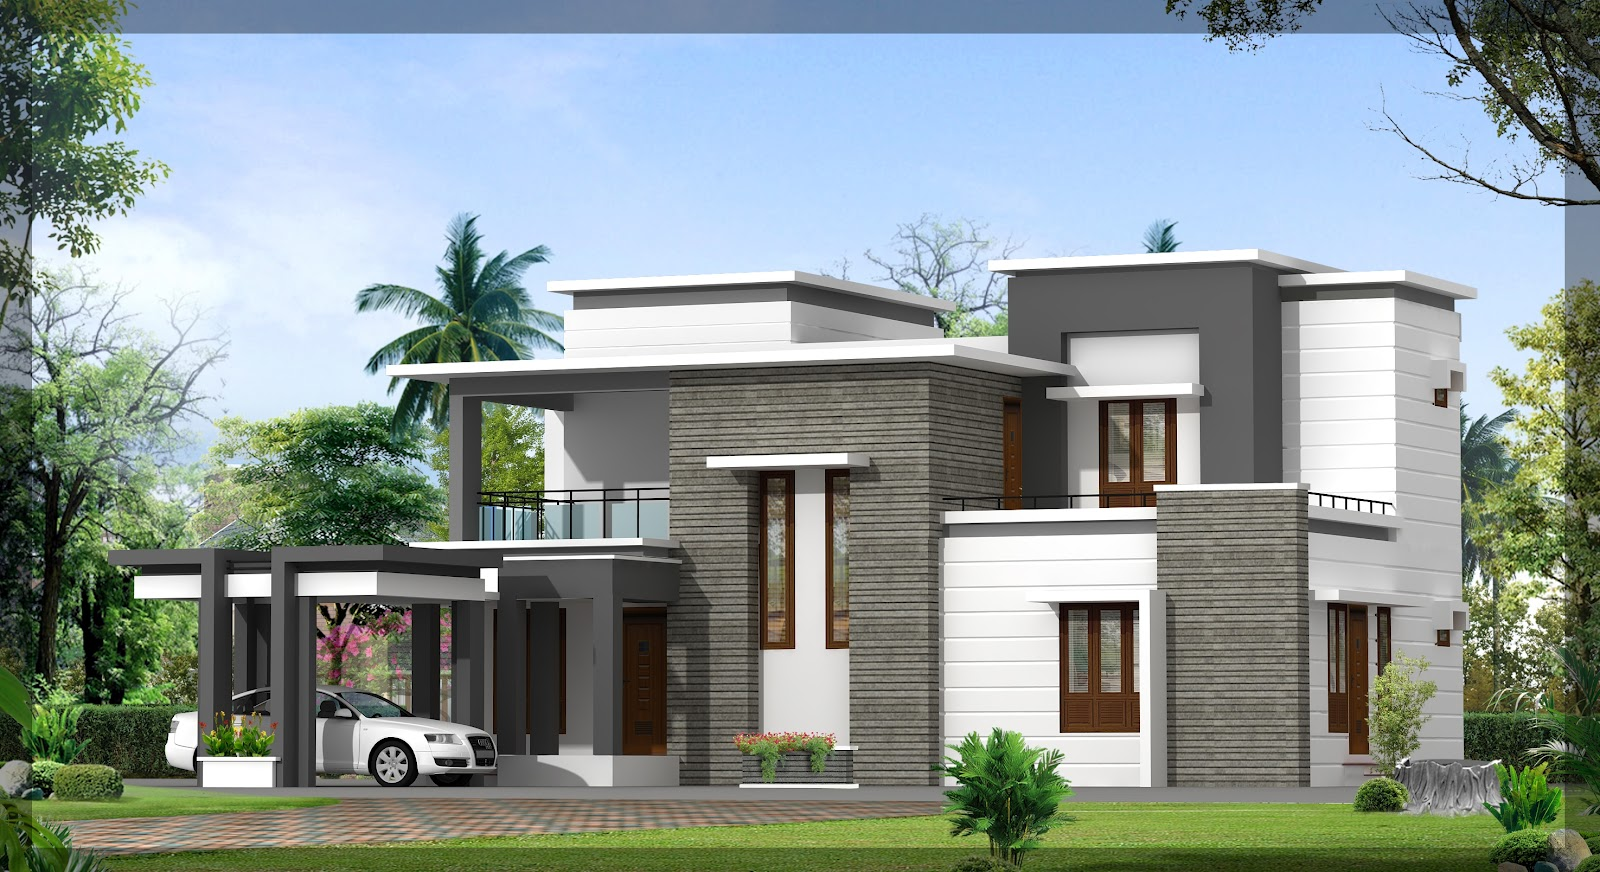 Design modern house with a large yard home inspiration for Large modern house plans